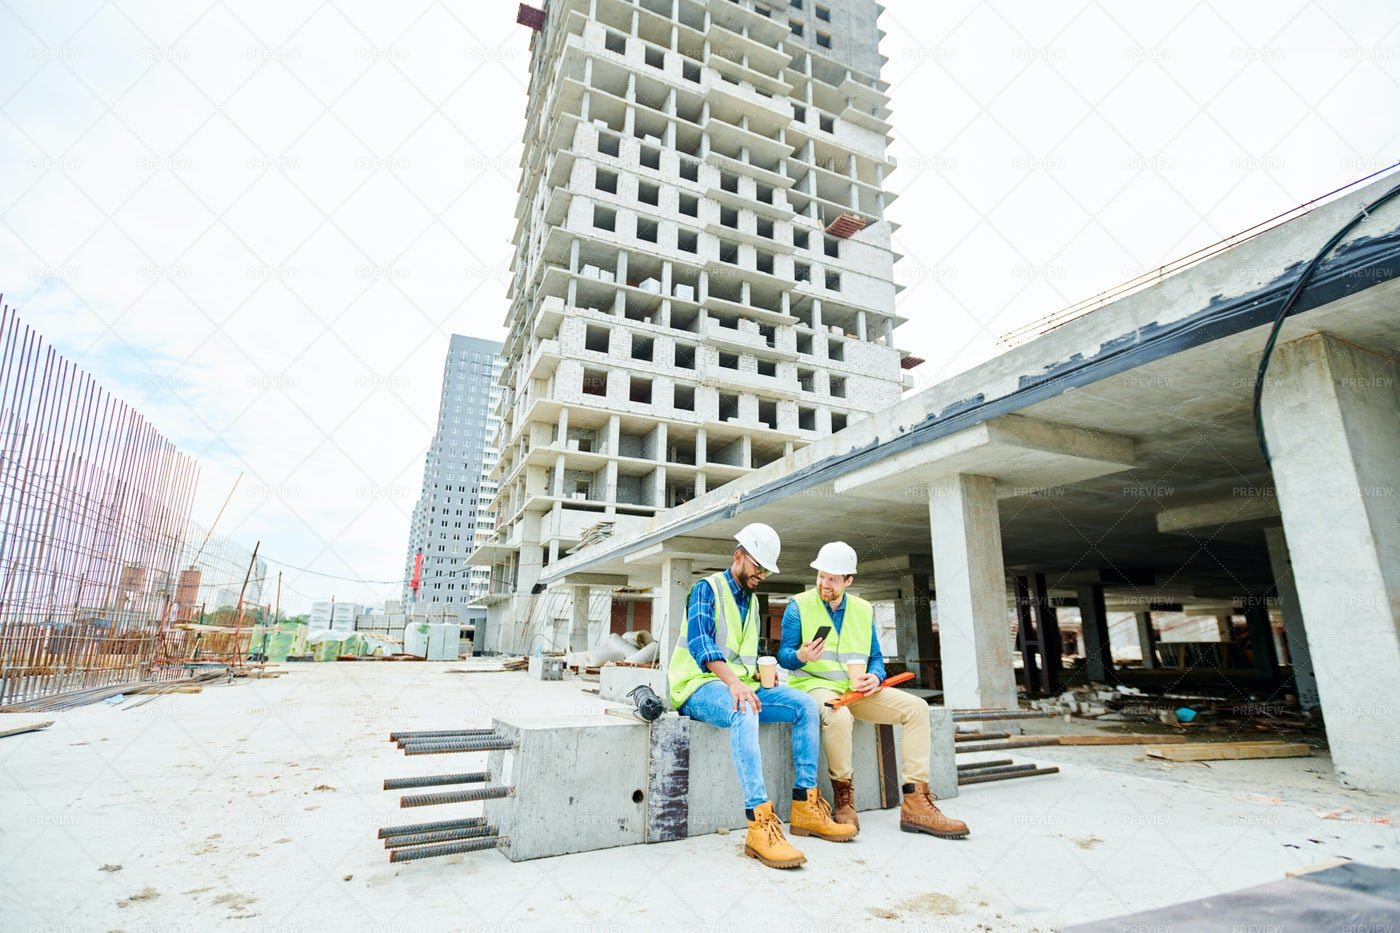 Engineers Discussing Construction...: Stock Photos